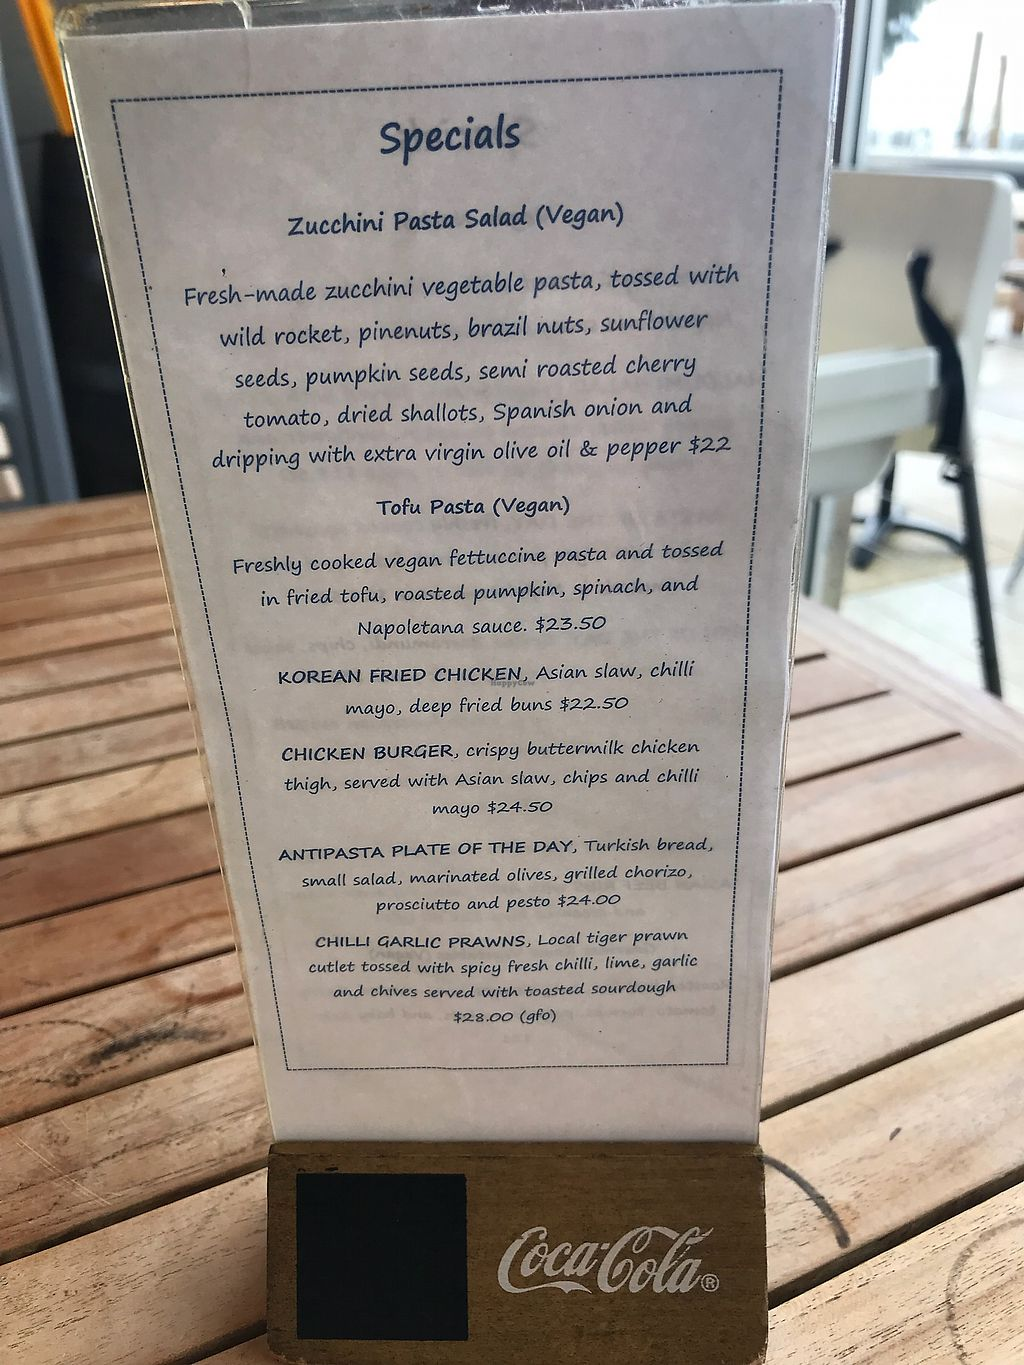 """Photo of Shore Cafe  by <a href=""""/members/profile/Hugtsa"""">Hugtsa</a> <br/>Lots of my veg options <br/> April 14, 2018  - <a href='/contact/abuse/image/117546/385434'>Report</a>"""